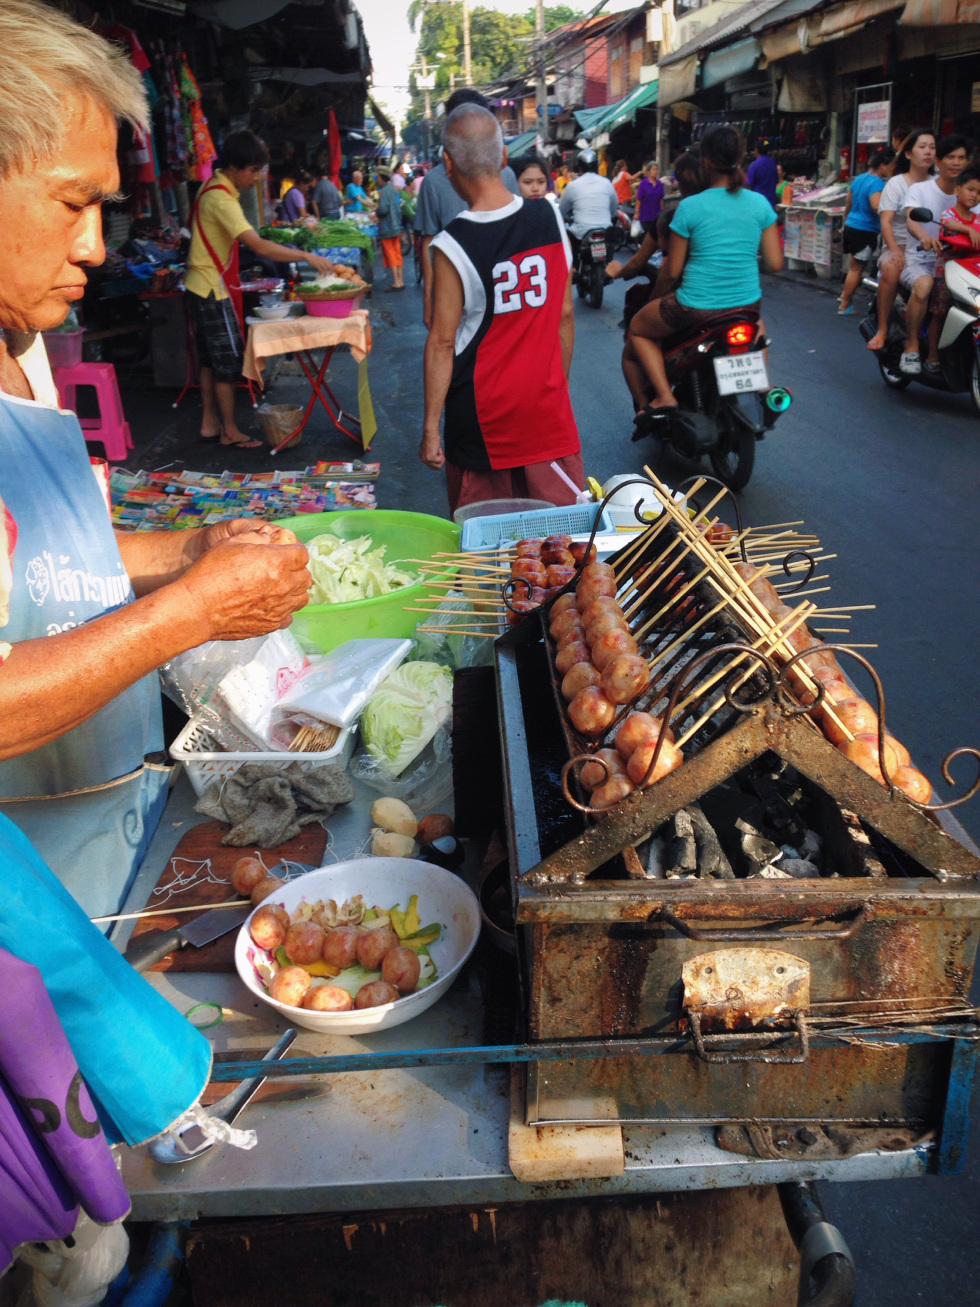 """It is impossible to describe the smell of Bangkok. The scent wafting through the streets changes from moment to moment. At any given second the hot breeze may change to the distinct aroma of sewage, before the wind takes it away and replaces it with the smell of sickeningly sweet pineapple and mango being sold from a nearby cart.  Street food is the everywhere. Old women stand hunched over large black woks crackling and popping with hot oil as they drop in chicken legs or whole crabs. Sausages lay piled up on trays in the sun, manned by someone with a fan to keep the flies off, causing you to wonder how long the meat has been baking in the heat of the day.  Chicken. There is a lot of chicken. Every single body part is fried in every single way and then either hung up, splayed out, or piled high onto platters for customers willing to pay the 80 baht. The streets are alive with shoppers and purveyors striking a deal or bargaining for their dinner. Vendors hand over organ meats on sticks or ladle vegetables and sauces into individual plastic bags for to go orders. People eat either standing on the corner, as they walk, or crowded around little plastic tables while motorbikes whiz past, babies riding in the front. Skinny cats with loosely hanging utters lay asleep, flopped across shelves holding the condiments used for the food. Passerby's stop to say hello to friends and nobody has a problem with staring at the lone """"farang"""", foreigner as they call out to me like they are playing a game of where's Waldo. It's too hot outside for me so I carry a large icy Chang Beer that has almost as much condensation on the glass as I have sweat dripping down the back of my neck. I pause here and there and take a swig while I contemplate taking the risk on those unique tiny bright blue mussels that are being steamed in heaping mountains, or those clams sitting in a spicy red stew of a broth."""